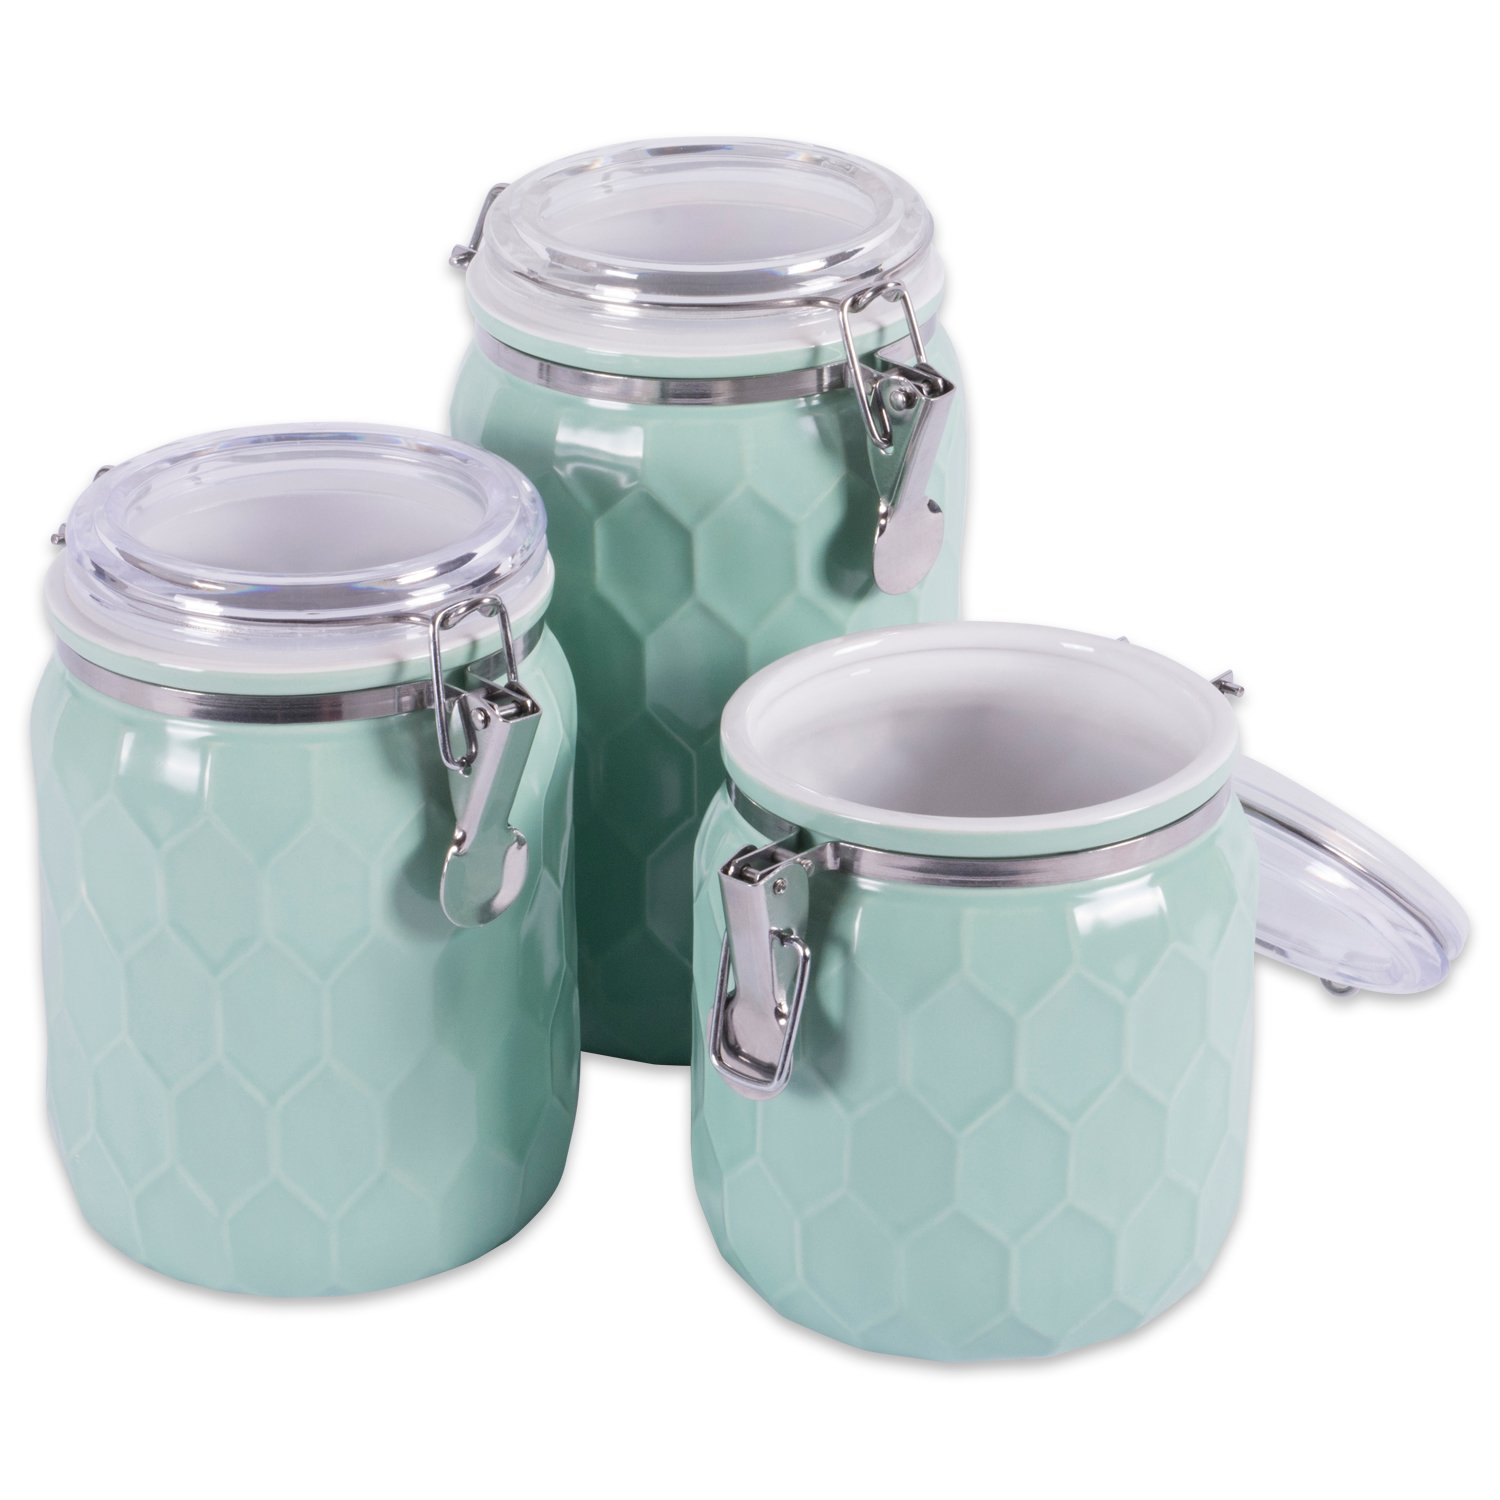 Dii 3 Piece Modern Honeycomb Half Matte Glaze Ceramic Kitchen Canister Jar With With Airtight Clamp Lid For Food Storage Serve Coffee Sugar Tea Spices And More And More Aqua Buy Online In